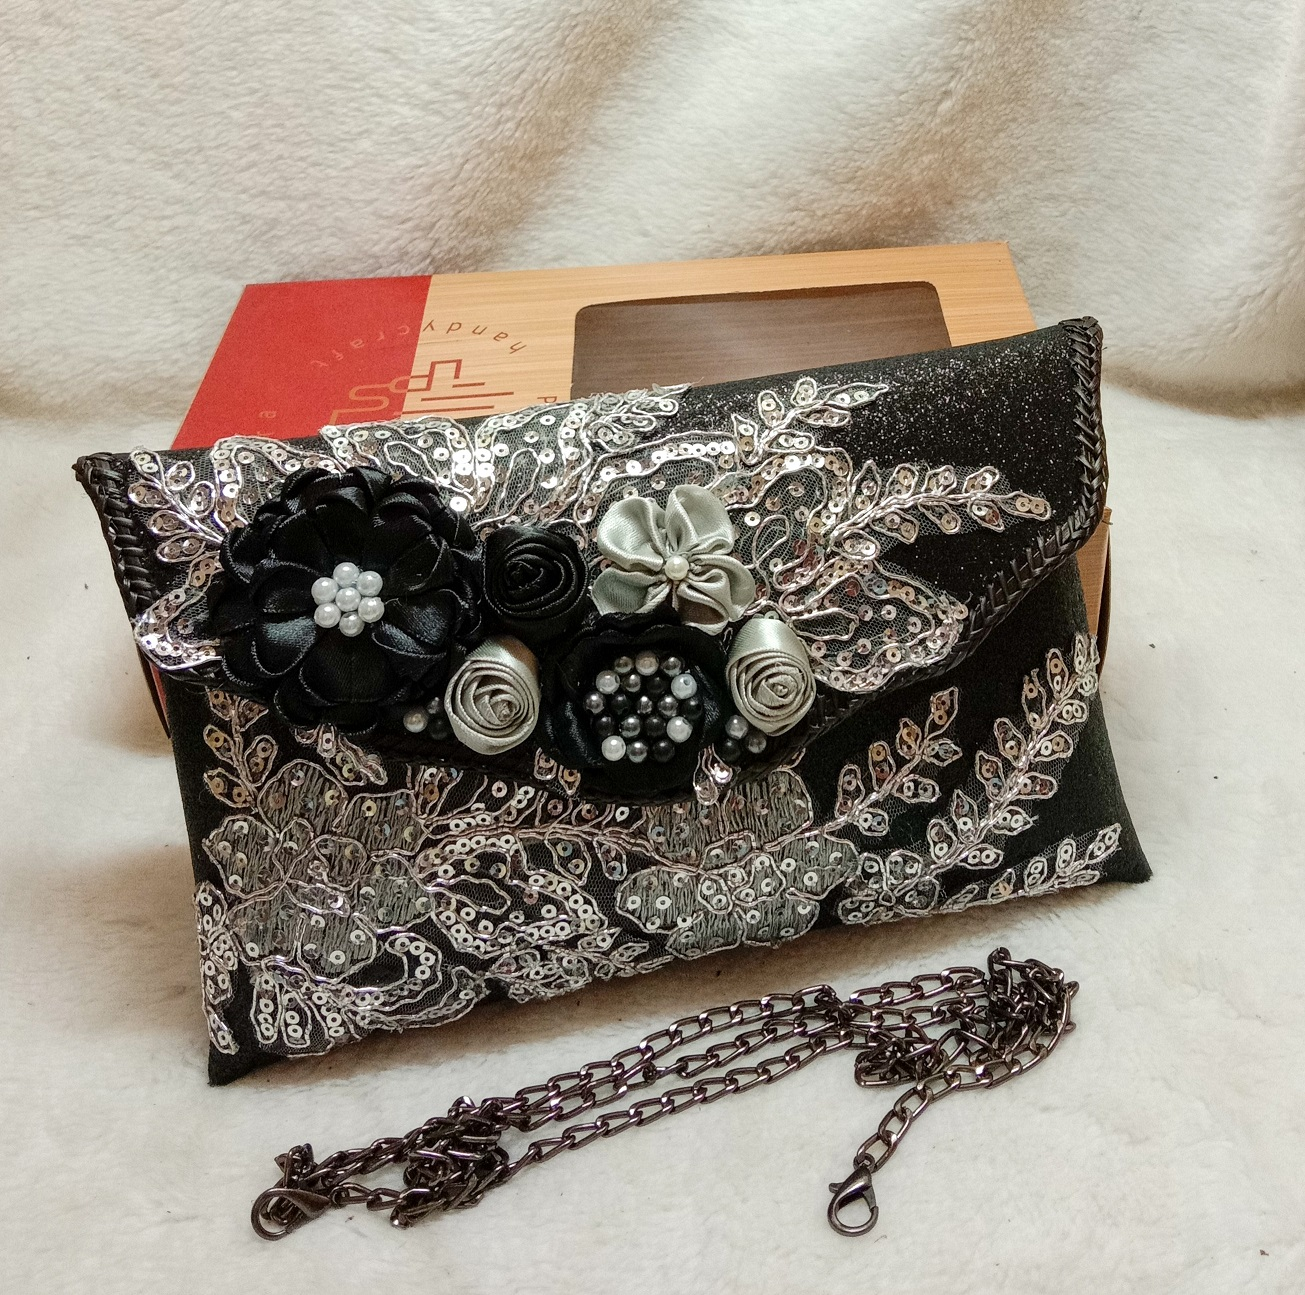 putra sukapura dompet clutch cantik party gliter kombin brokat new